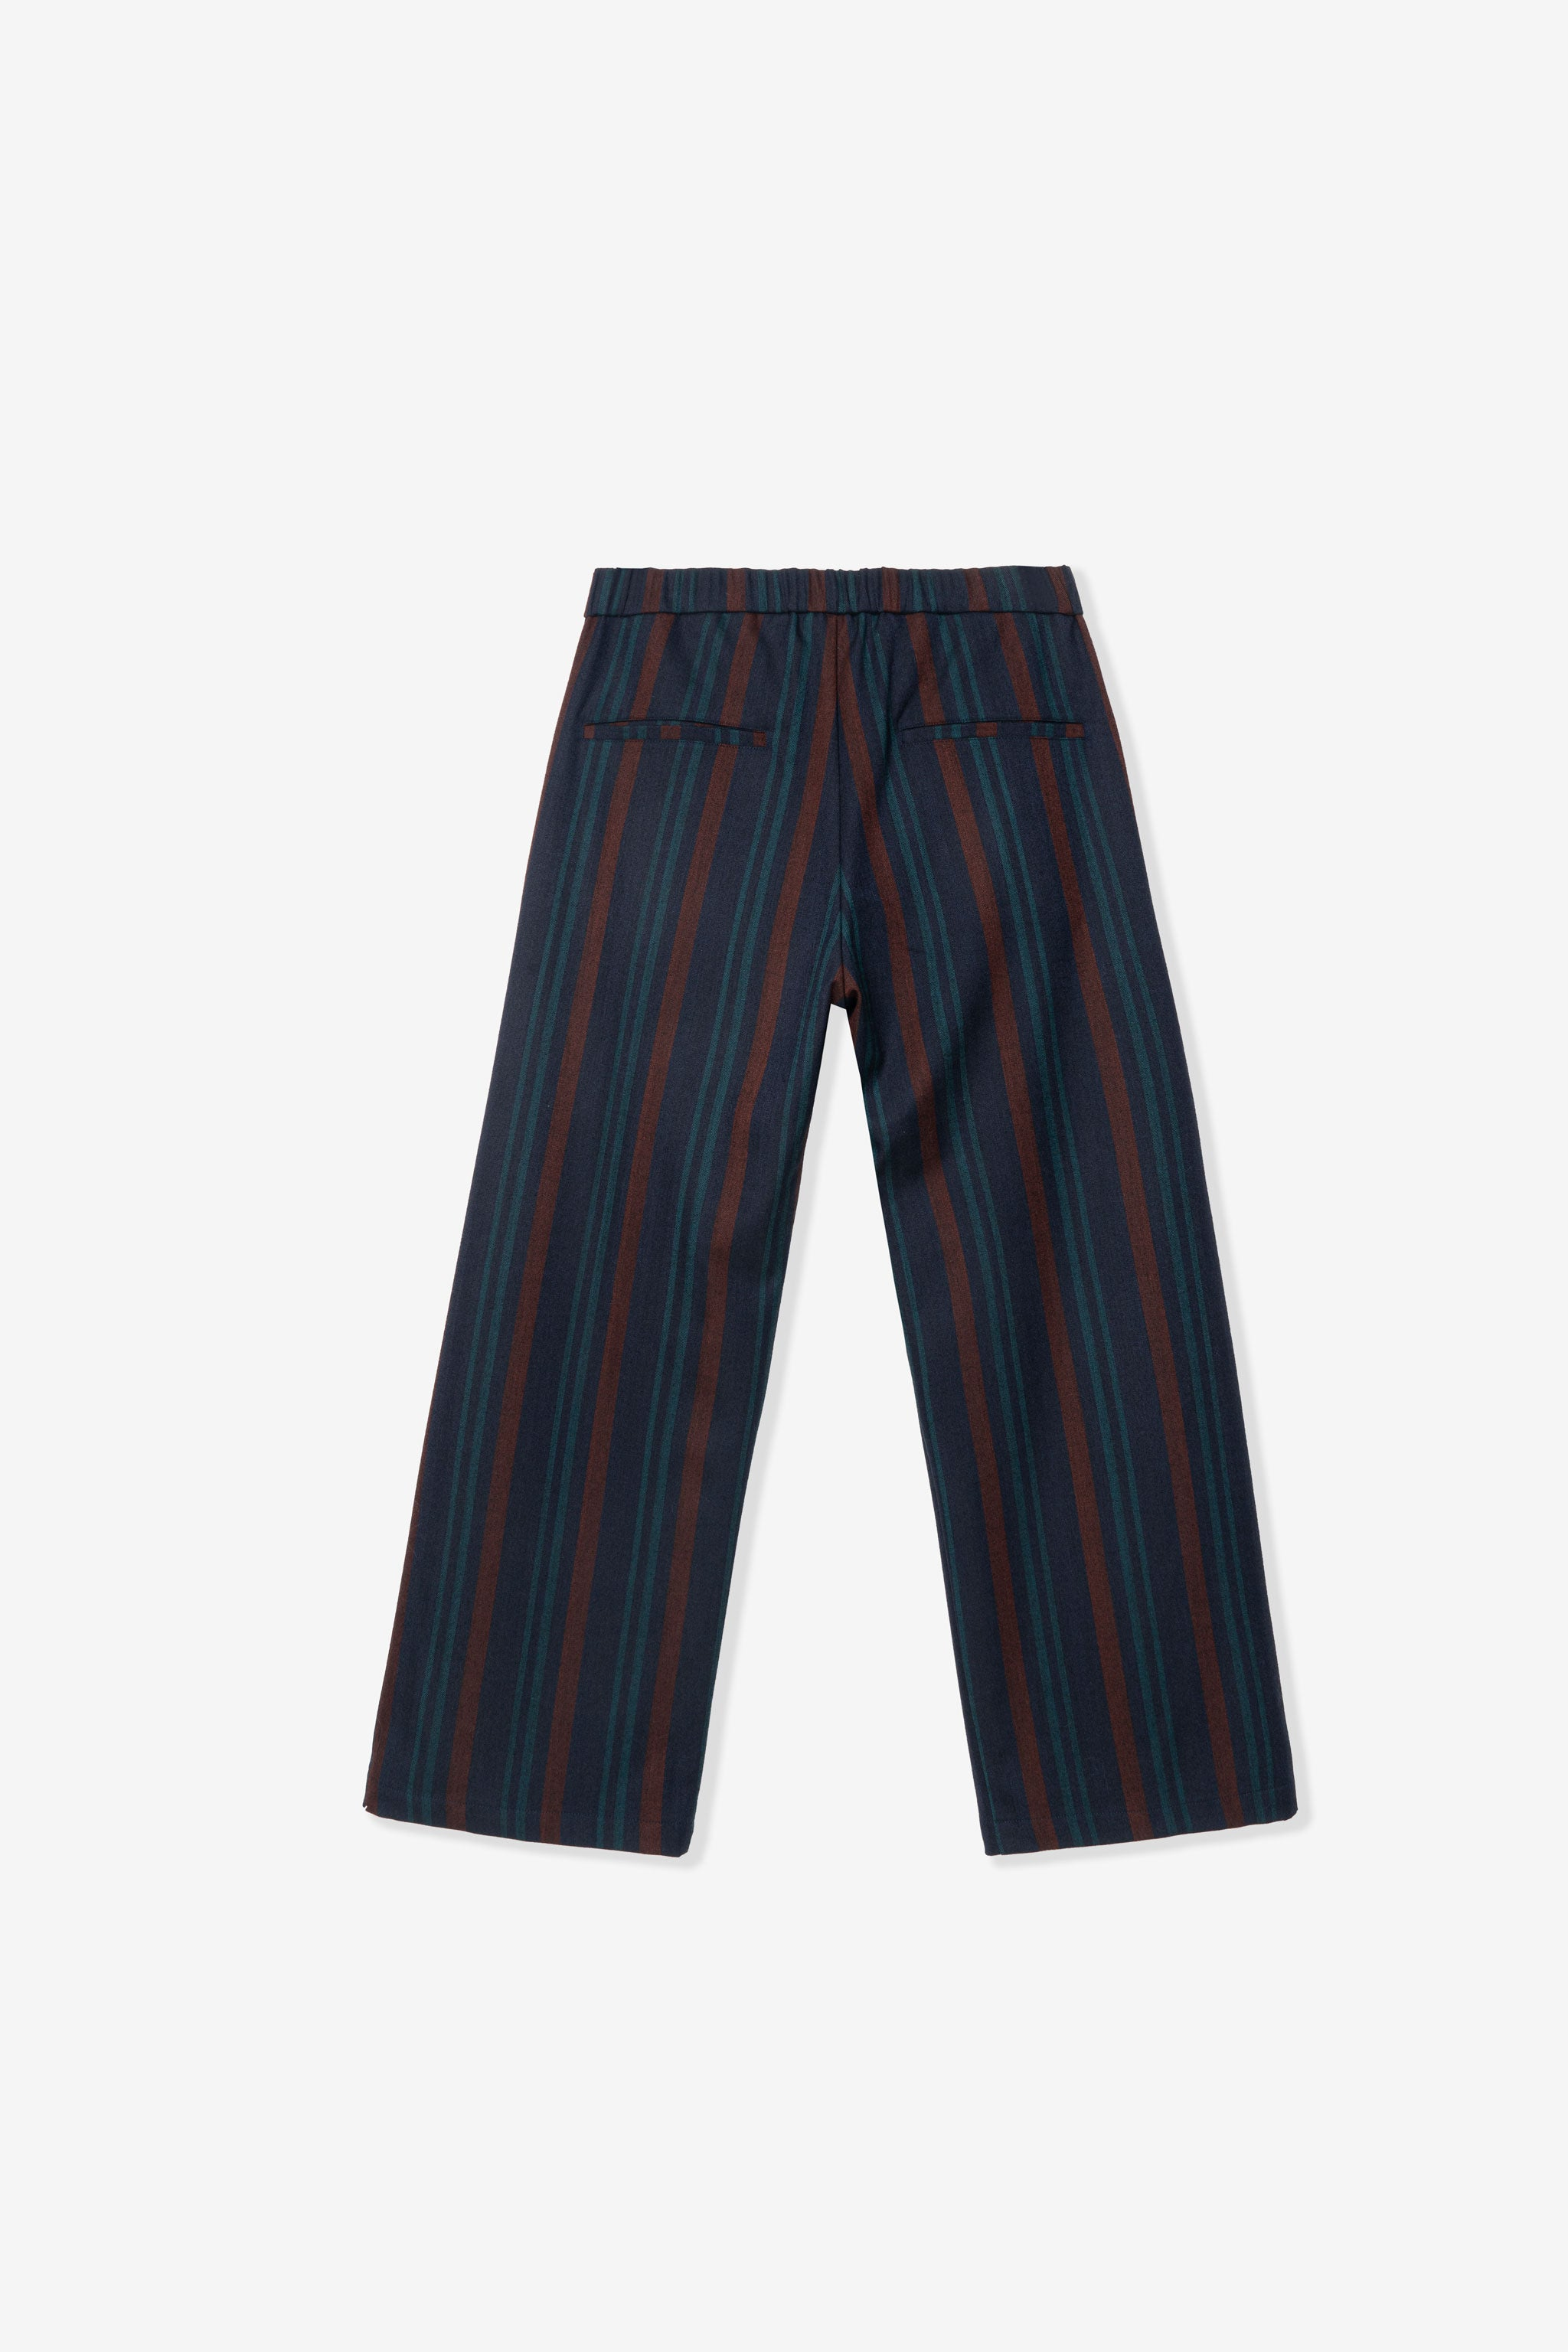 Goodfight Hitchcock Trouser Blue Stripe